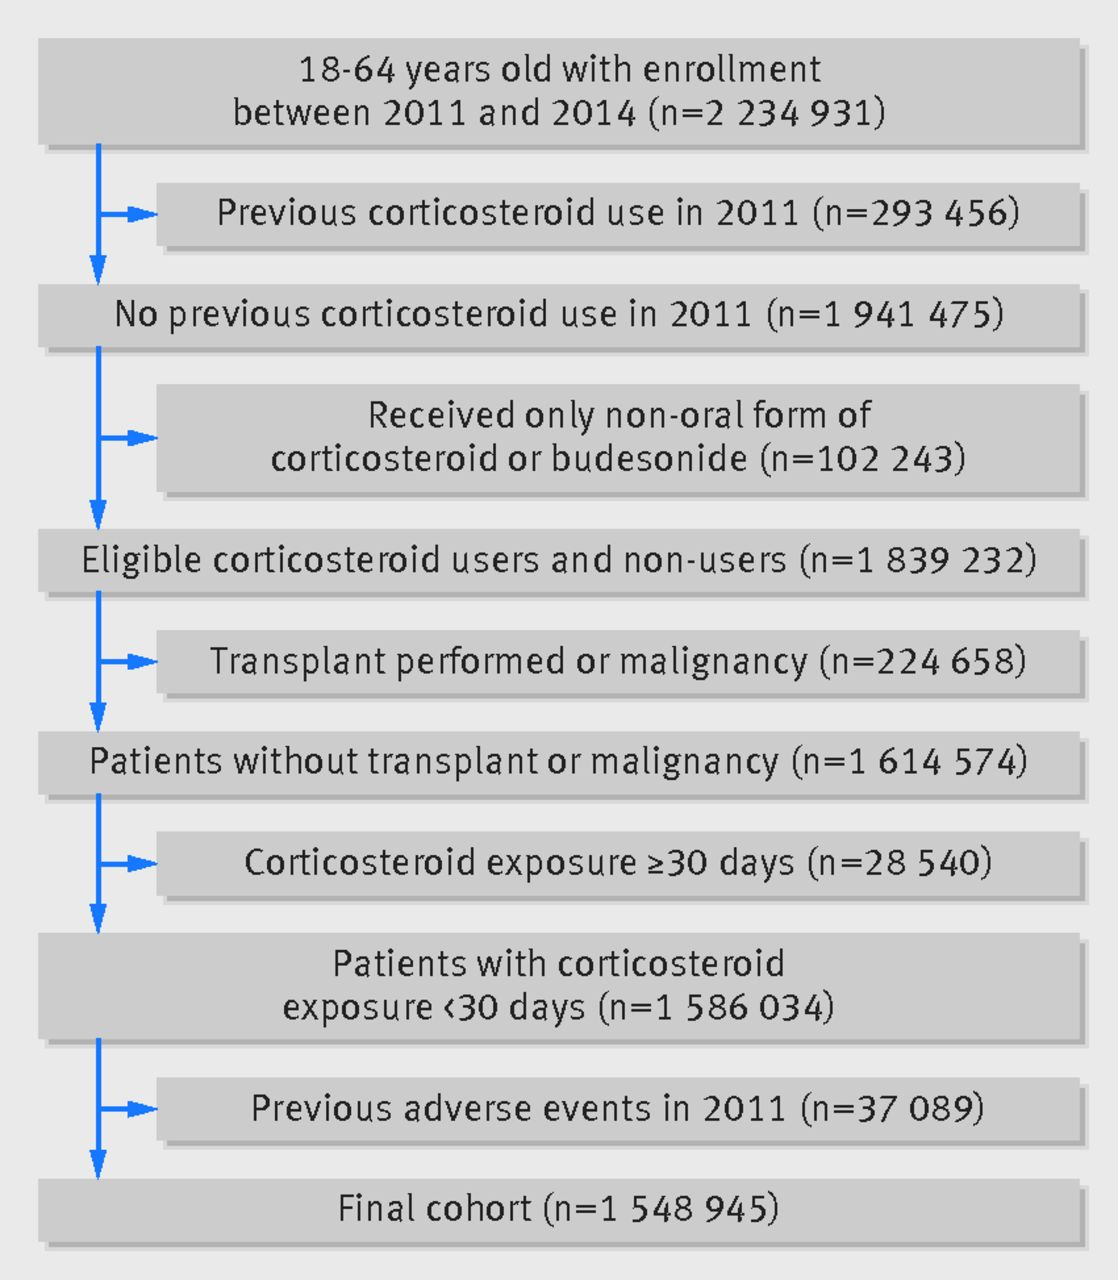 Short term use of oral corticosteroids and related harms among